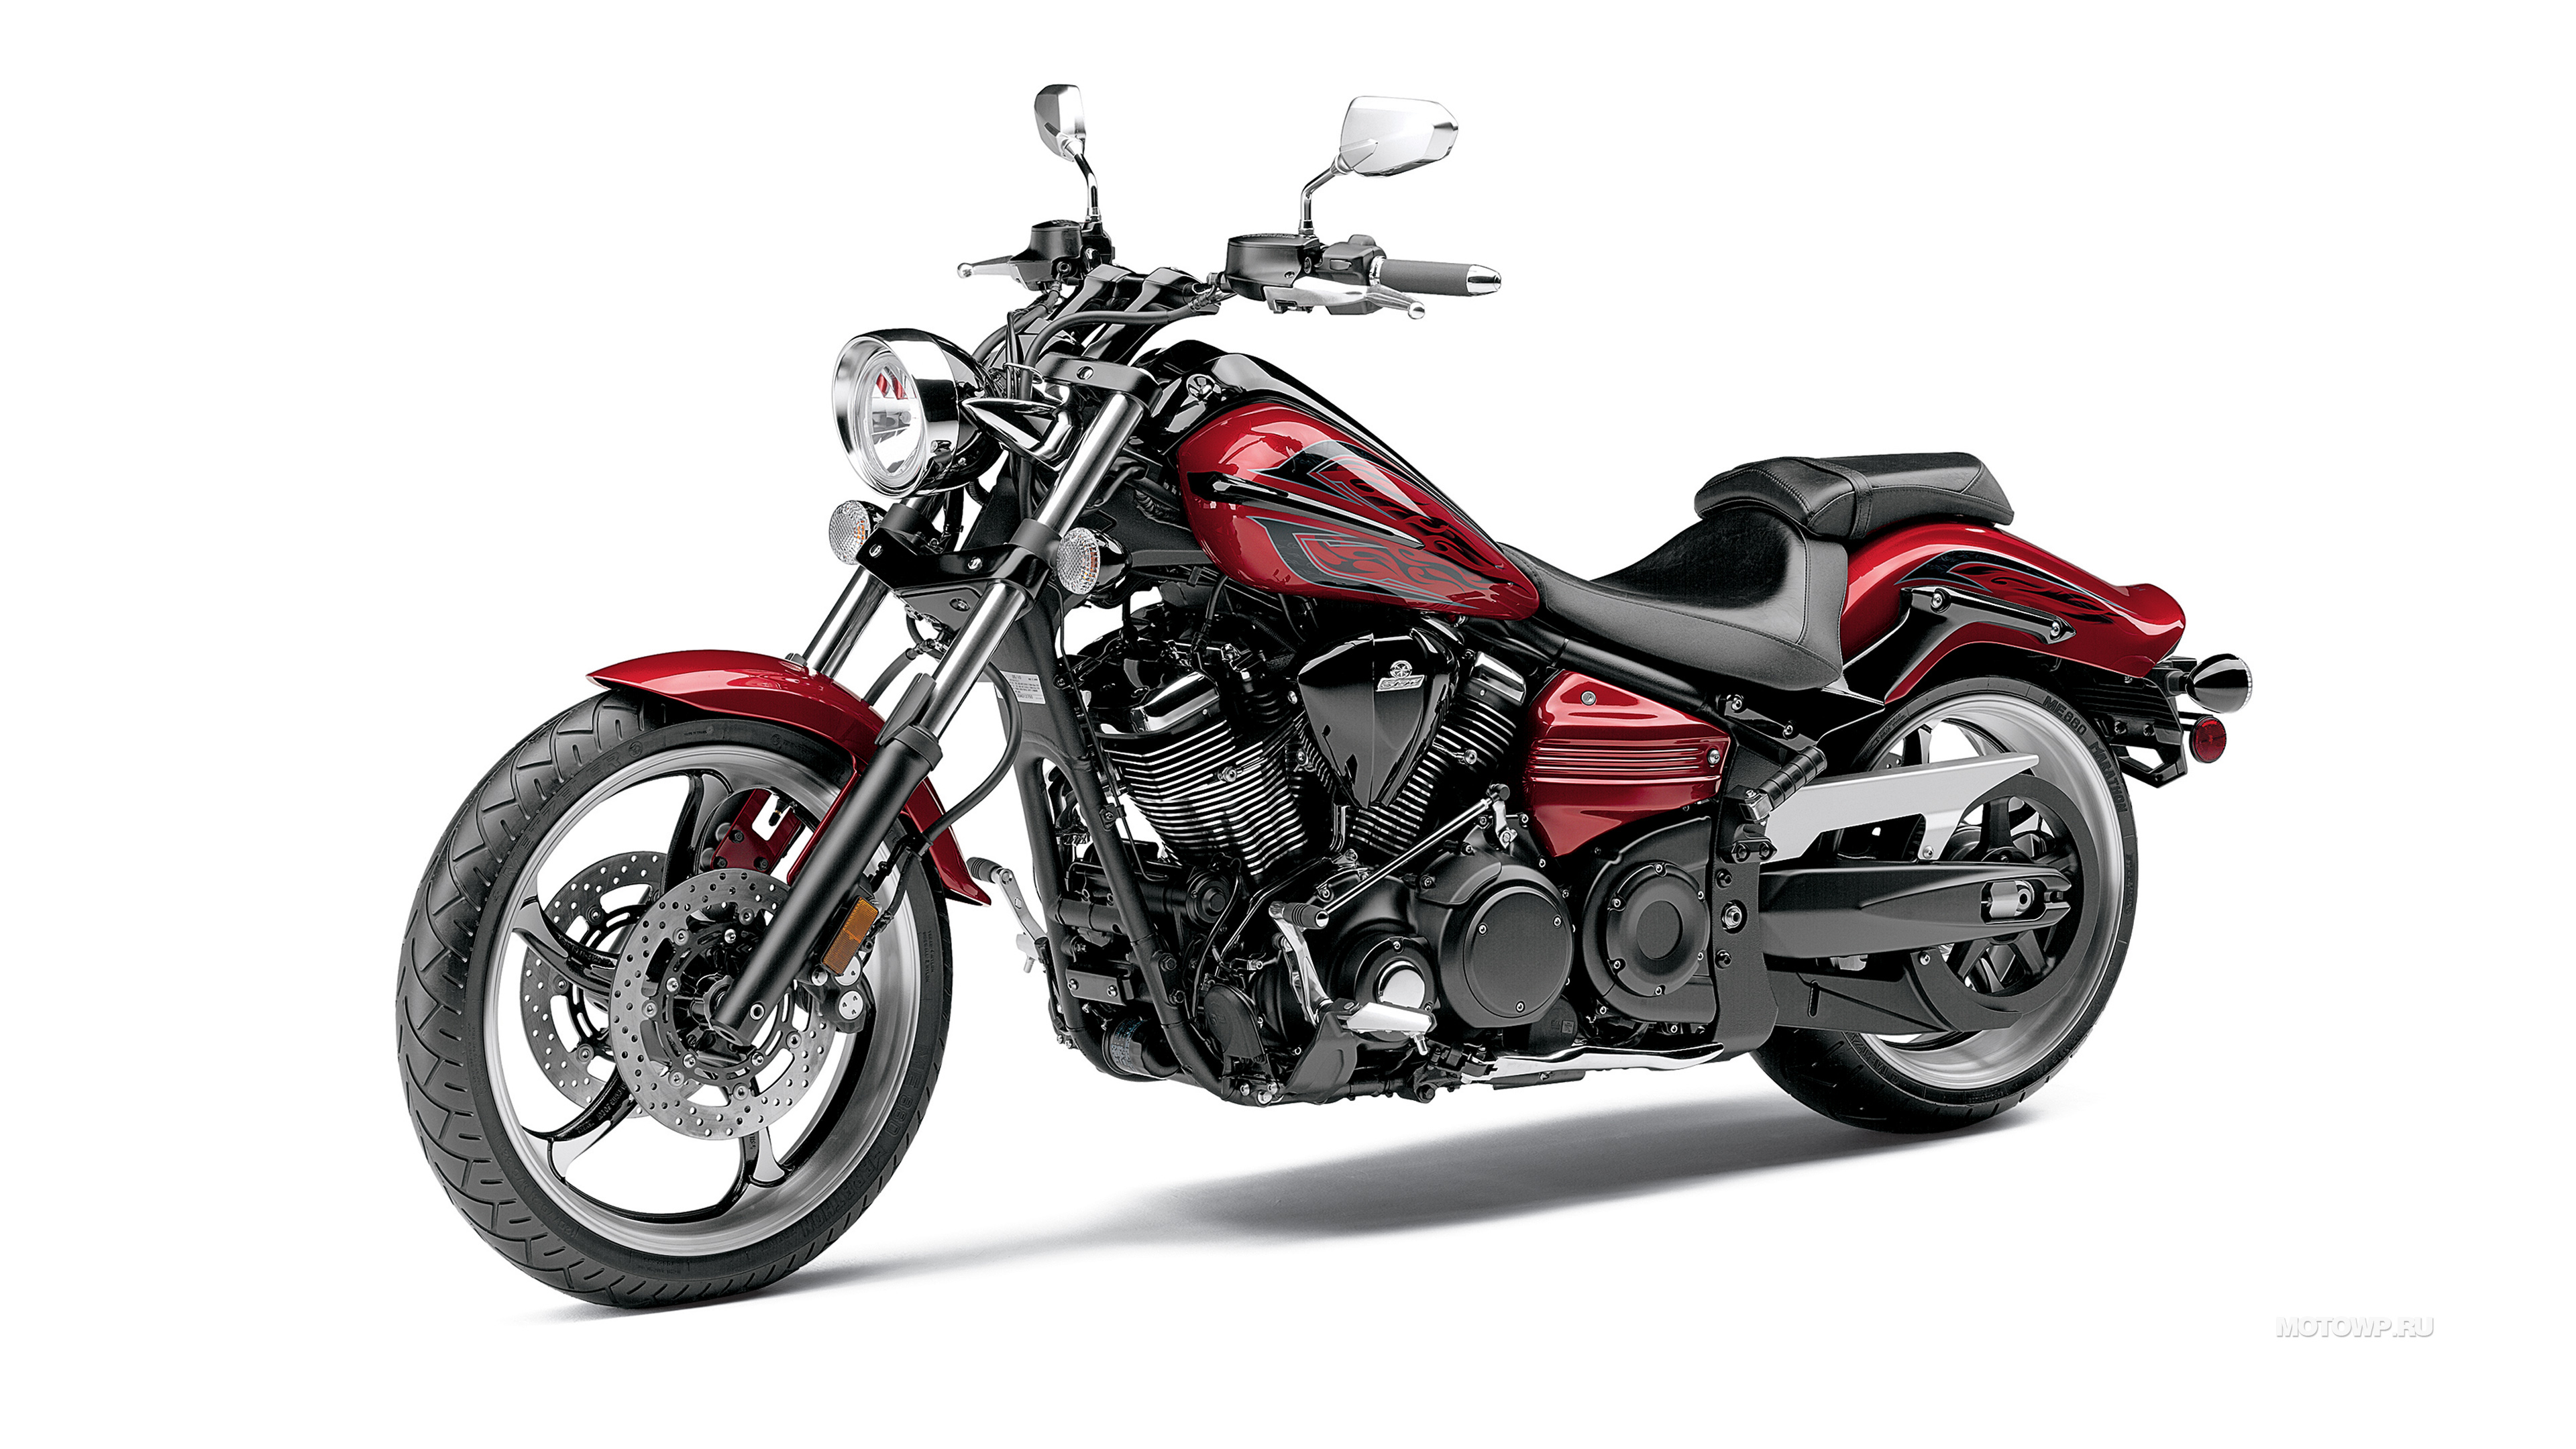 yamaha stratoliner wiring diagram download 2009    yamaha    raider repair manual balancetracker  download 2009    yamaha    raider repair manual balancetracker